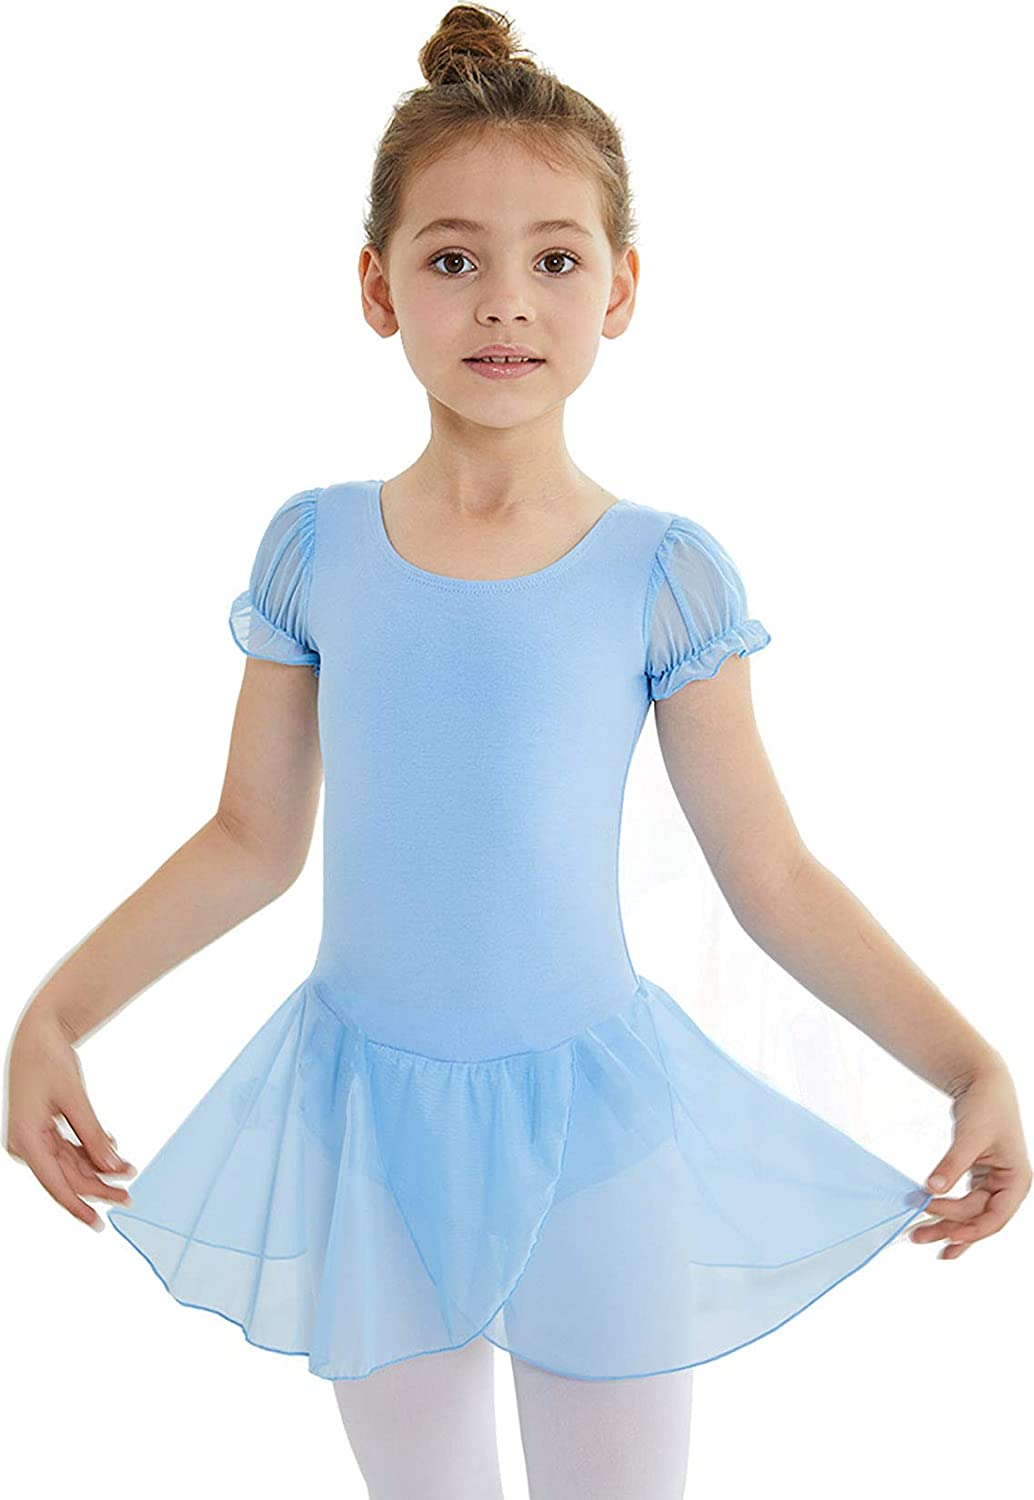 MdnMd Spring new work one after Philadelphia Mall another Blue Girls' Puff Sleeve Dance Ballet Leotard Ski Tutu with